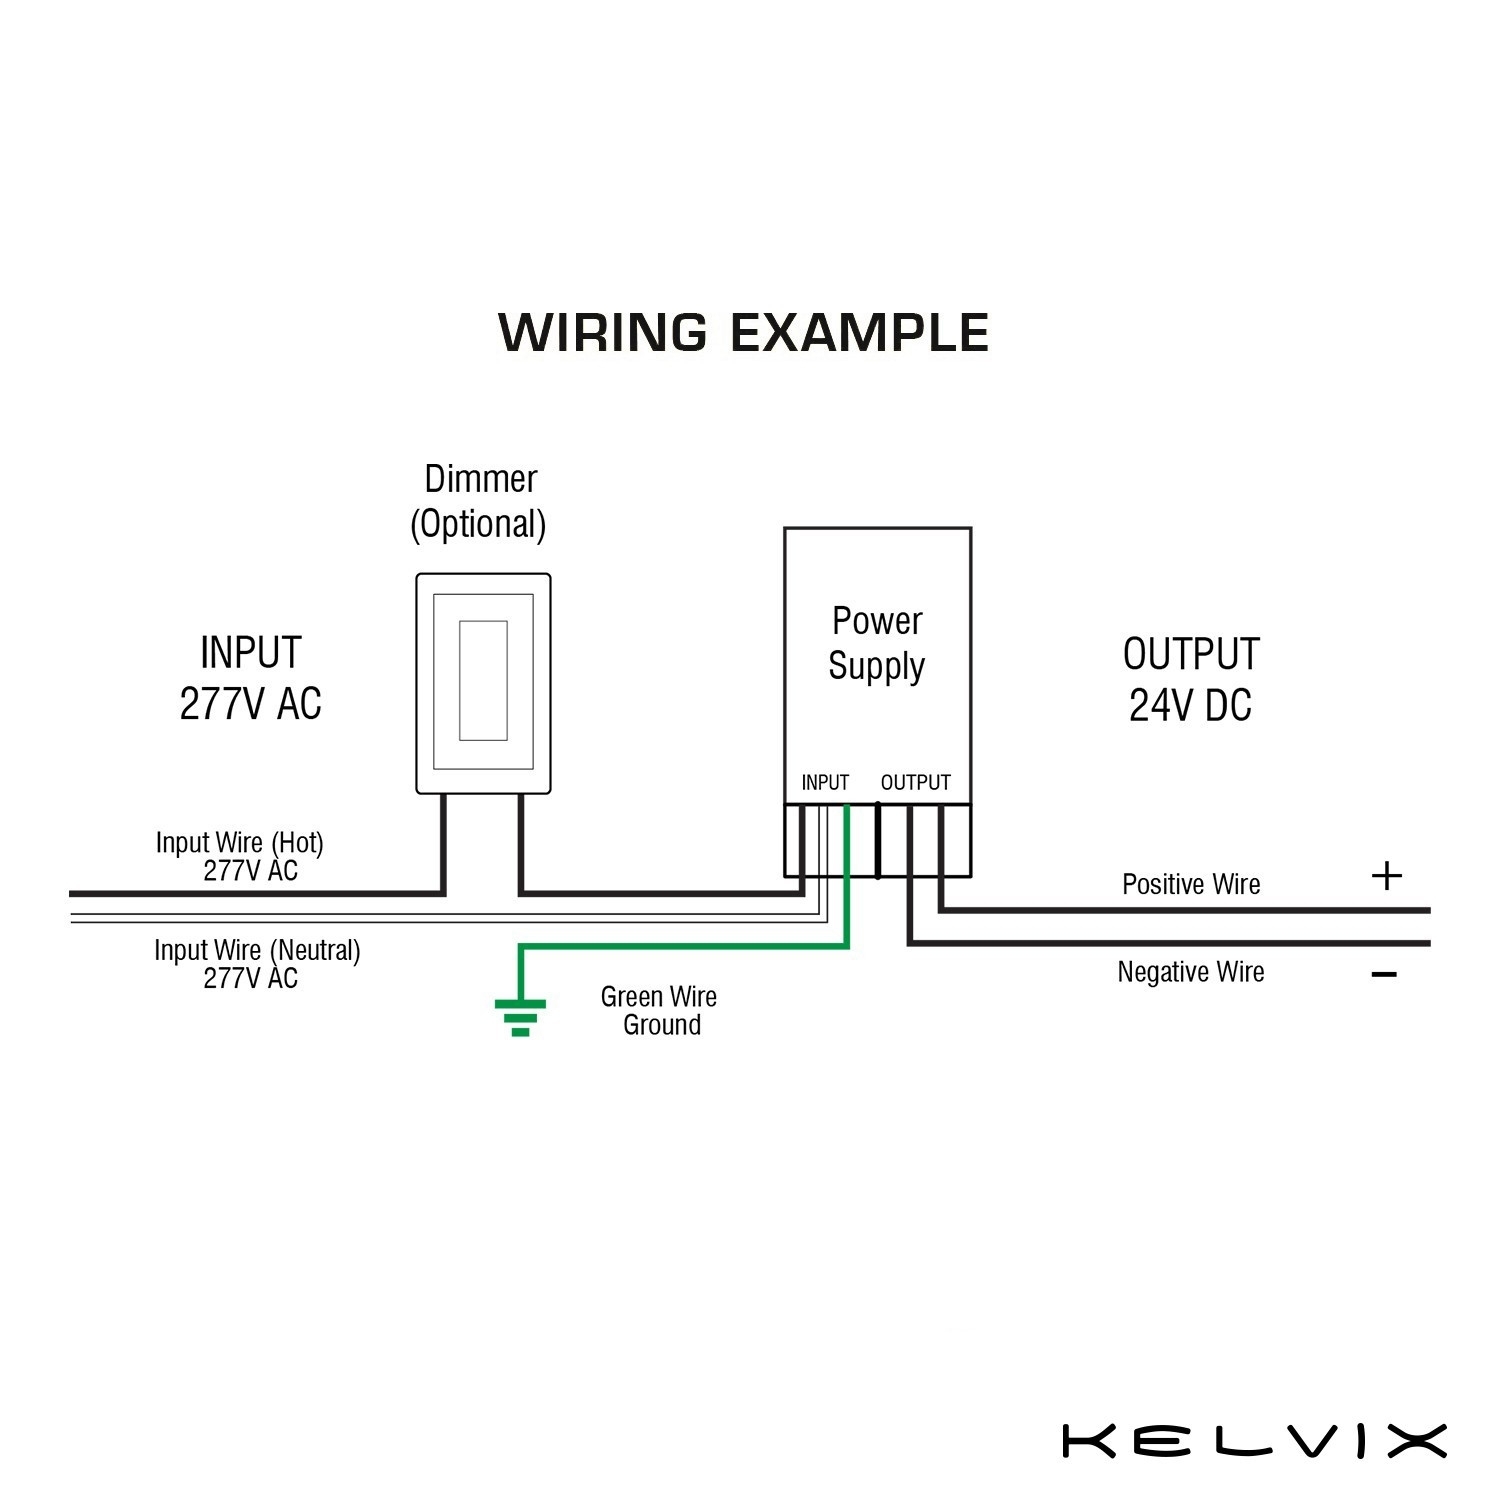 hight resolution of 480 277 volt wiring diagram wiring diagram note 277 volt wiring neutral wiring diagram center 480